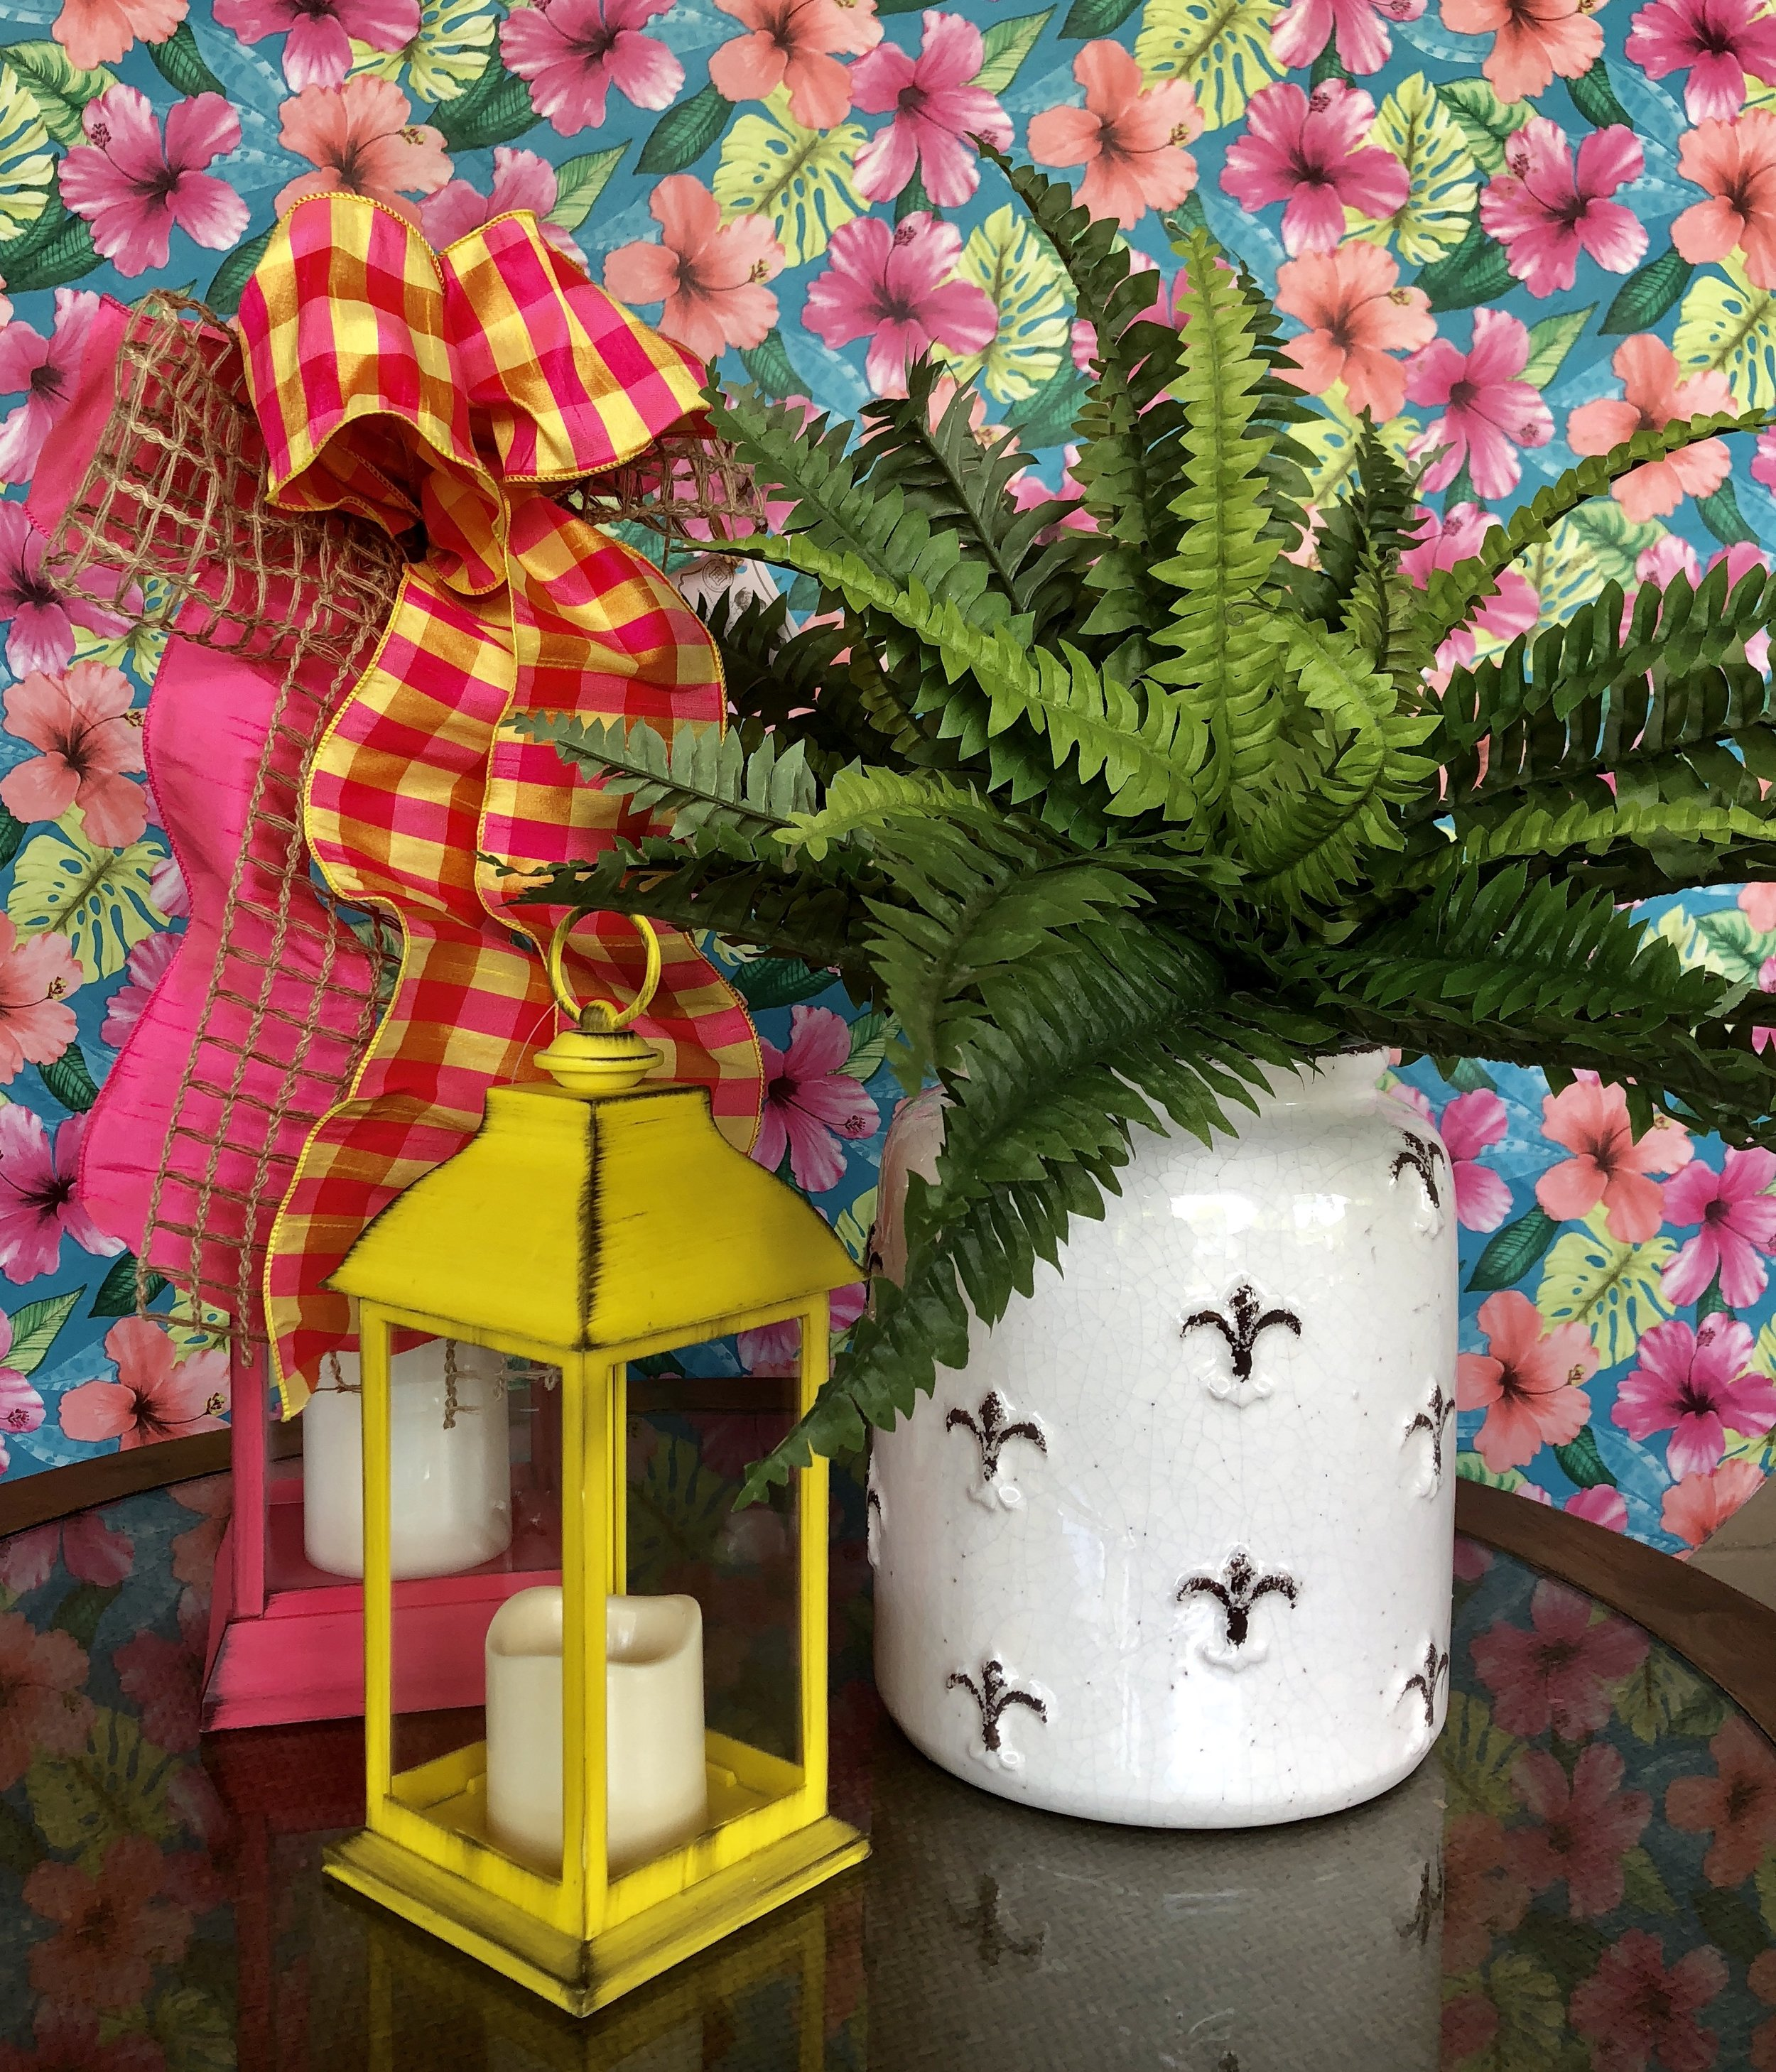 Large Lantern $39.99 Medium Lantern $20.99 from Three French Hens